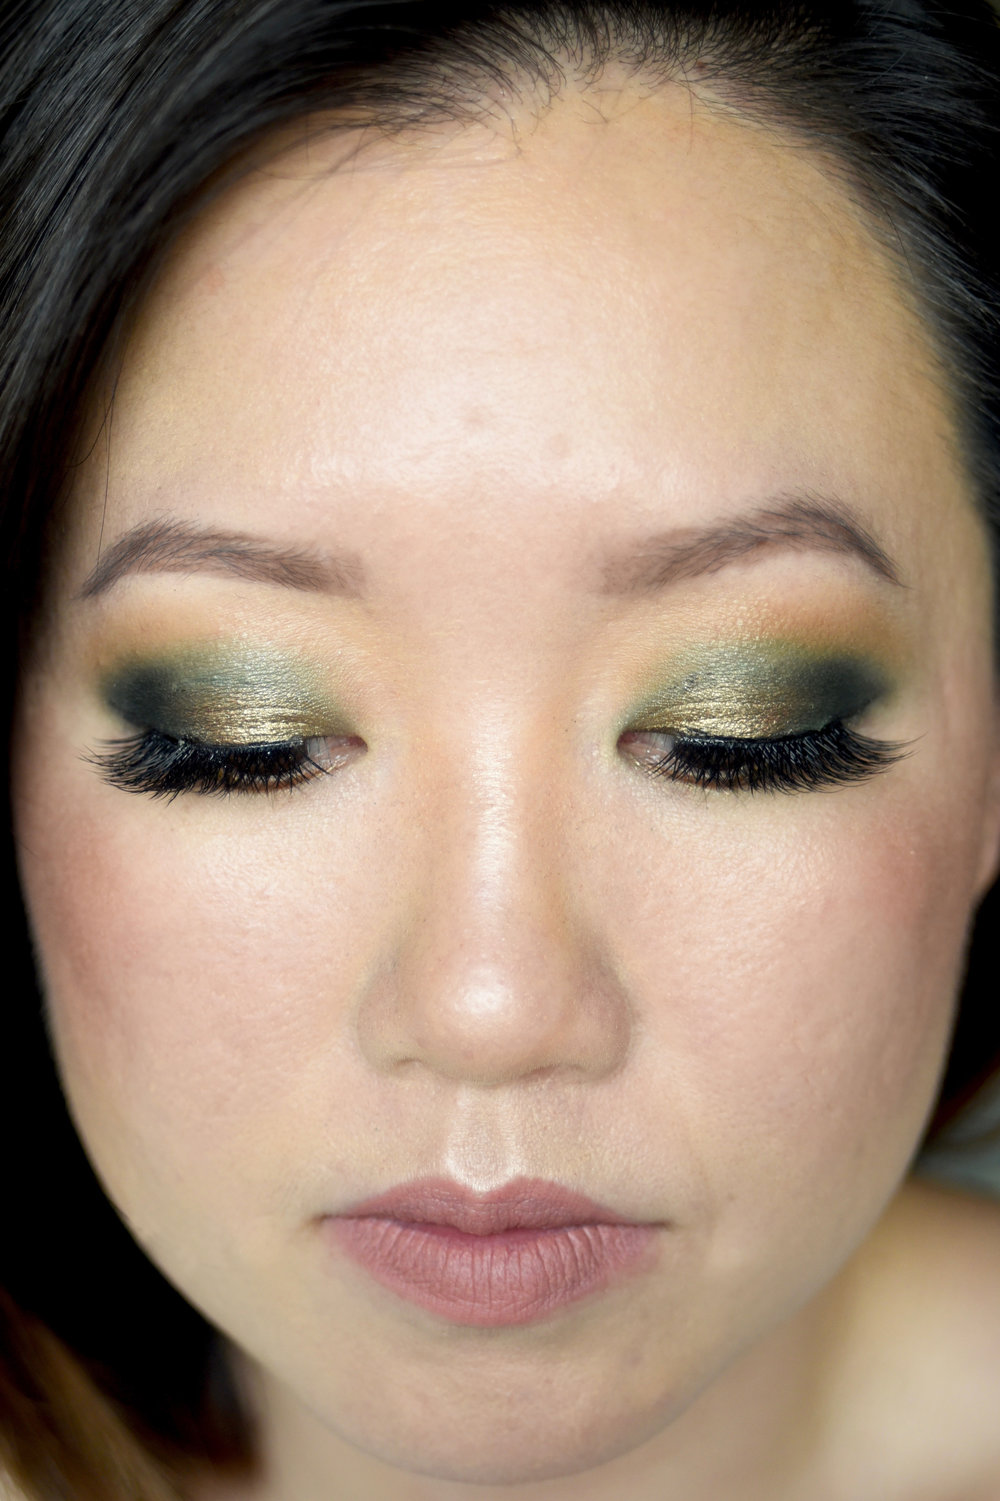 Morphe Jaclyn Hill Review for Asian Eyes__DSC_7833.jpg